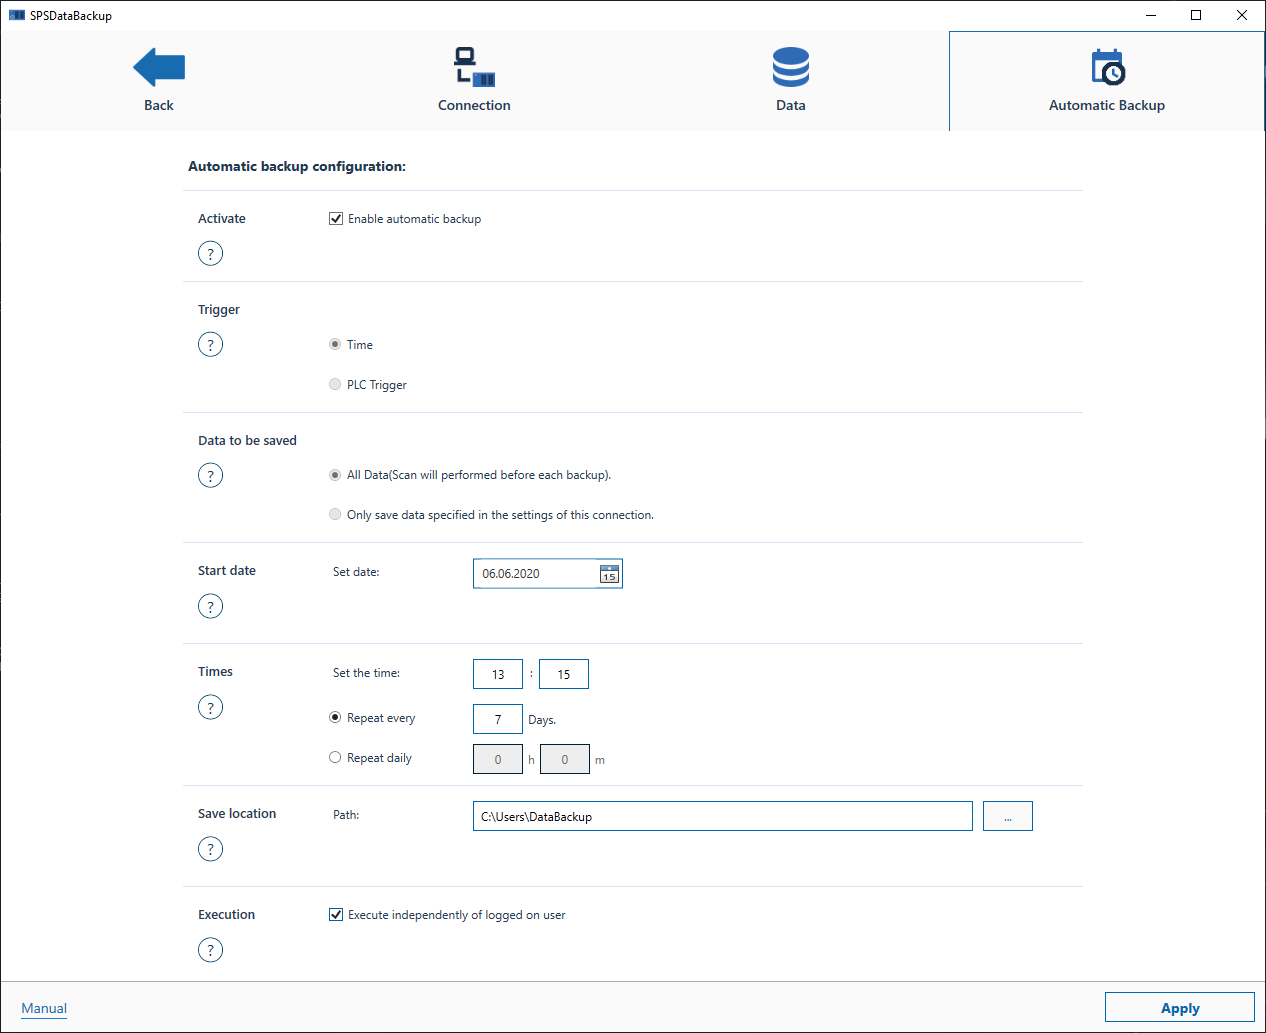 Customizing the Automatic Backup configurations